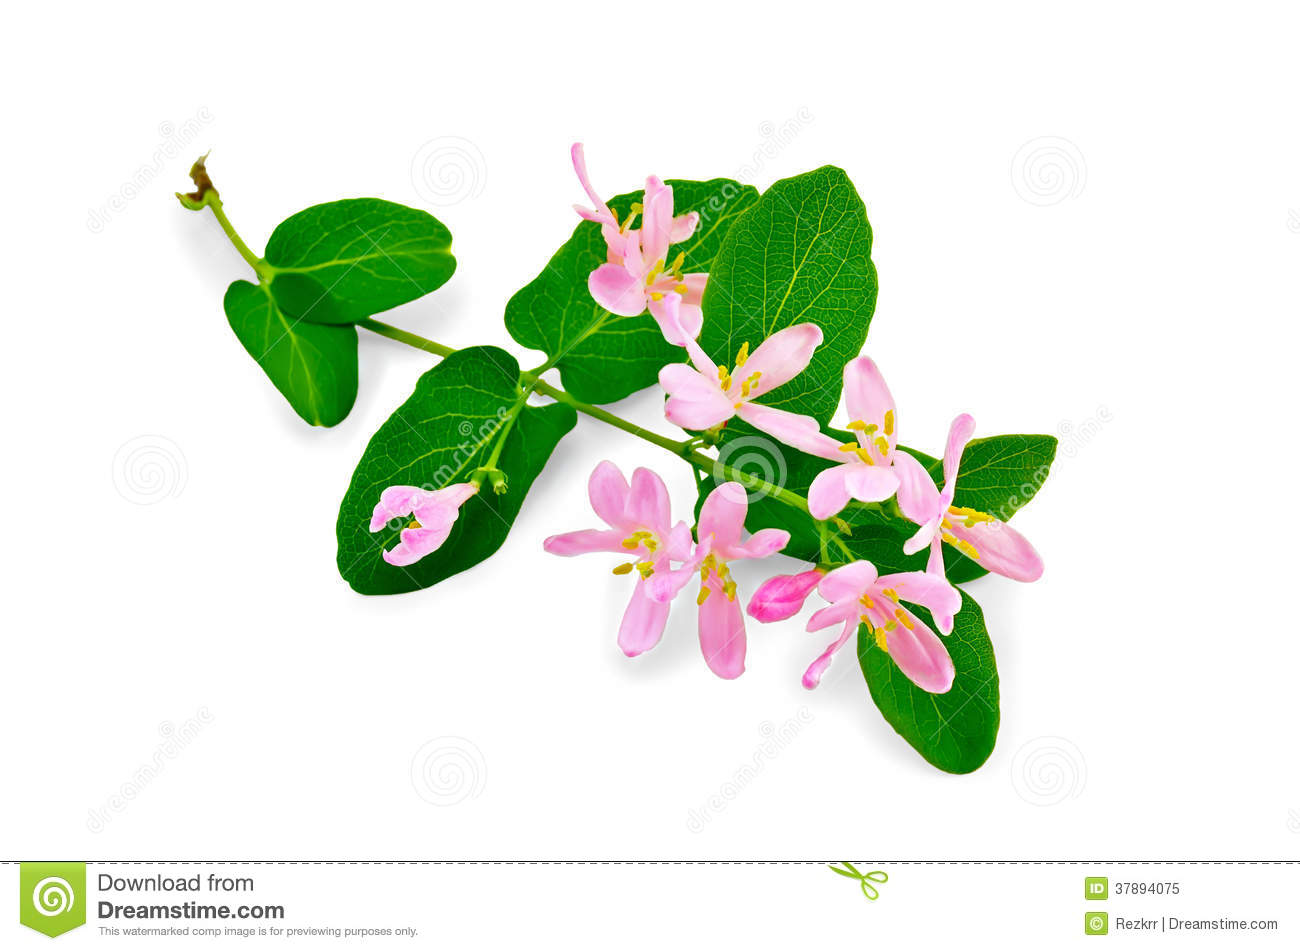 Honeysuckle A Twig With Pink Flowers Royalty Free Stock Photo.